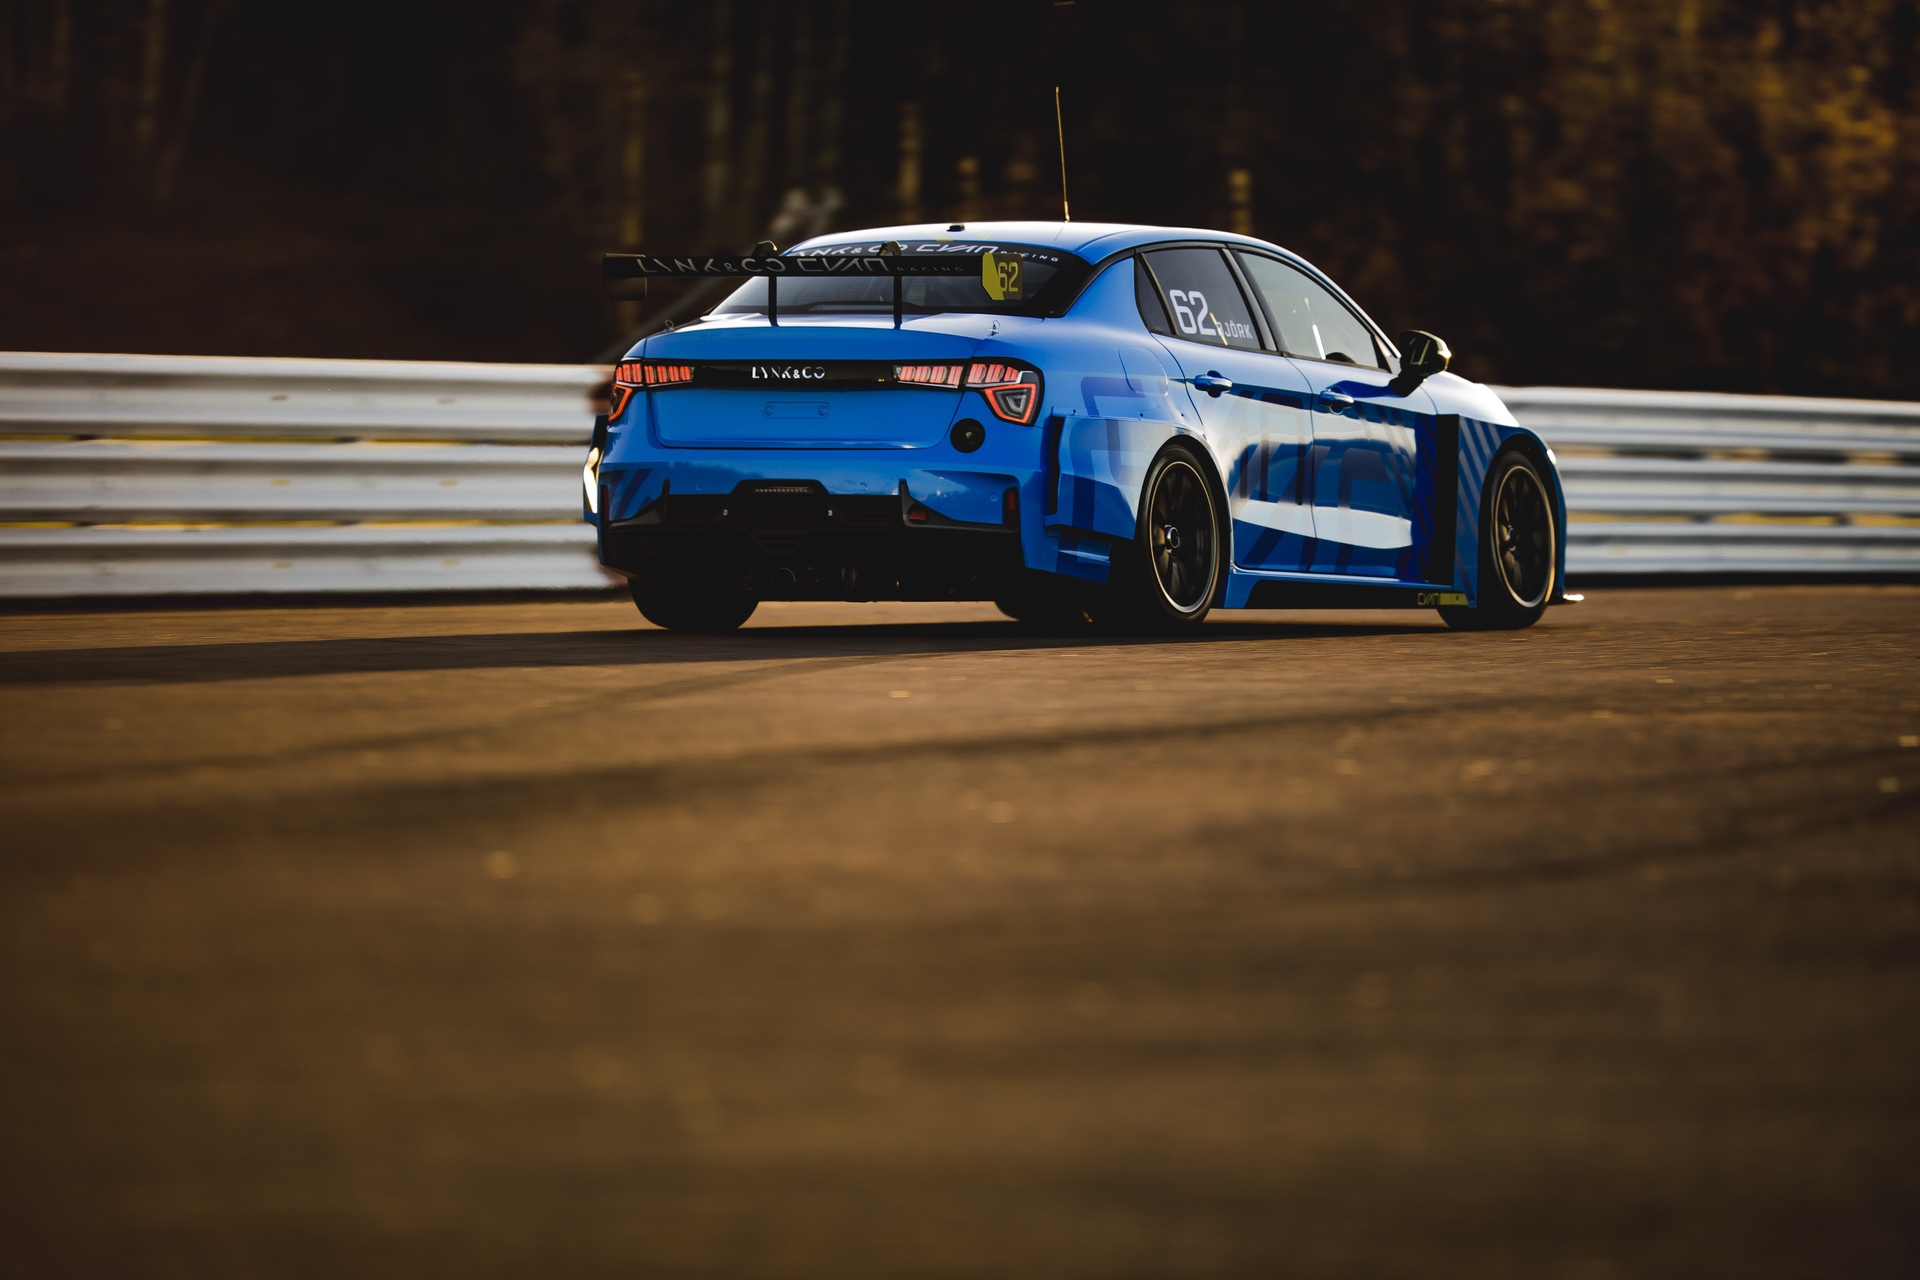 Thed Björk, Mantorp, Lynk & Co Cyan Racing, 22 October, 2018